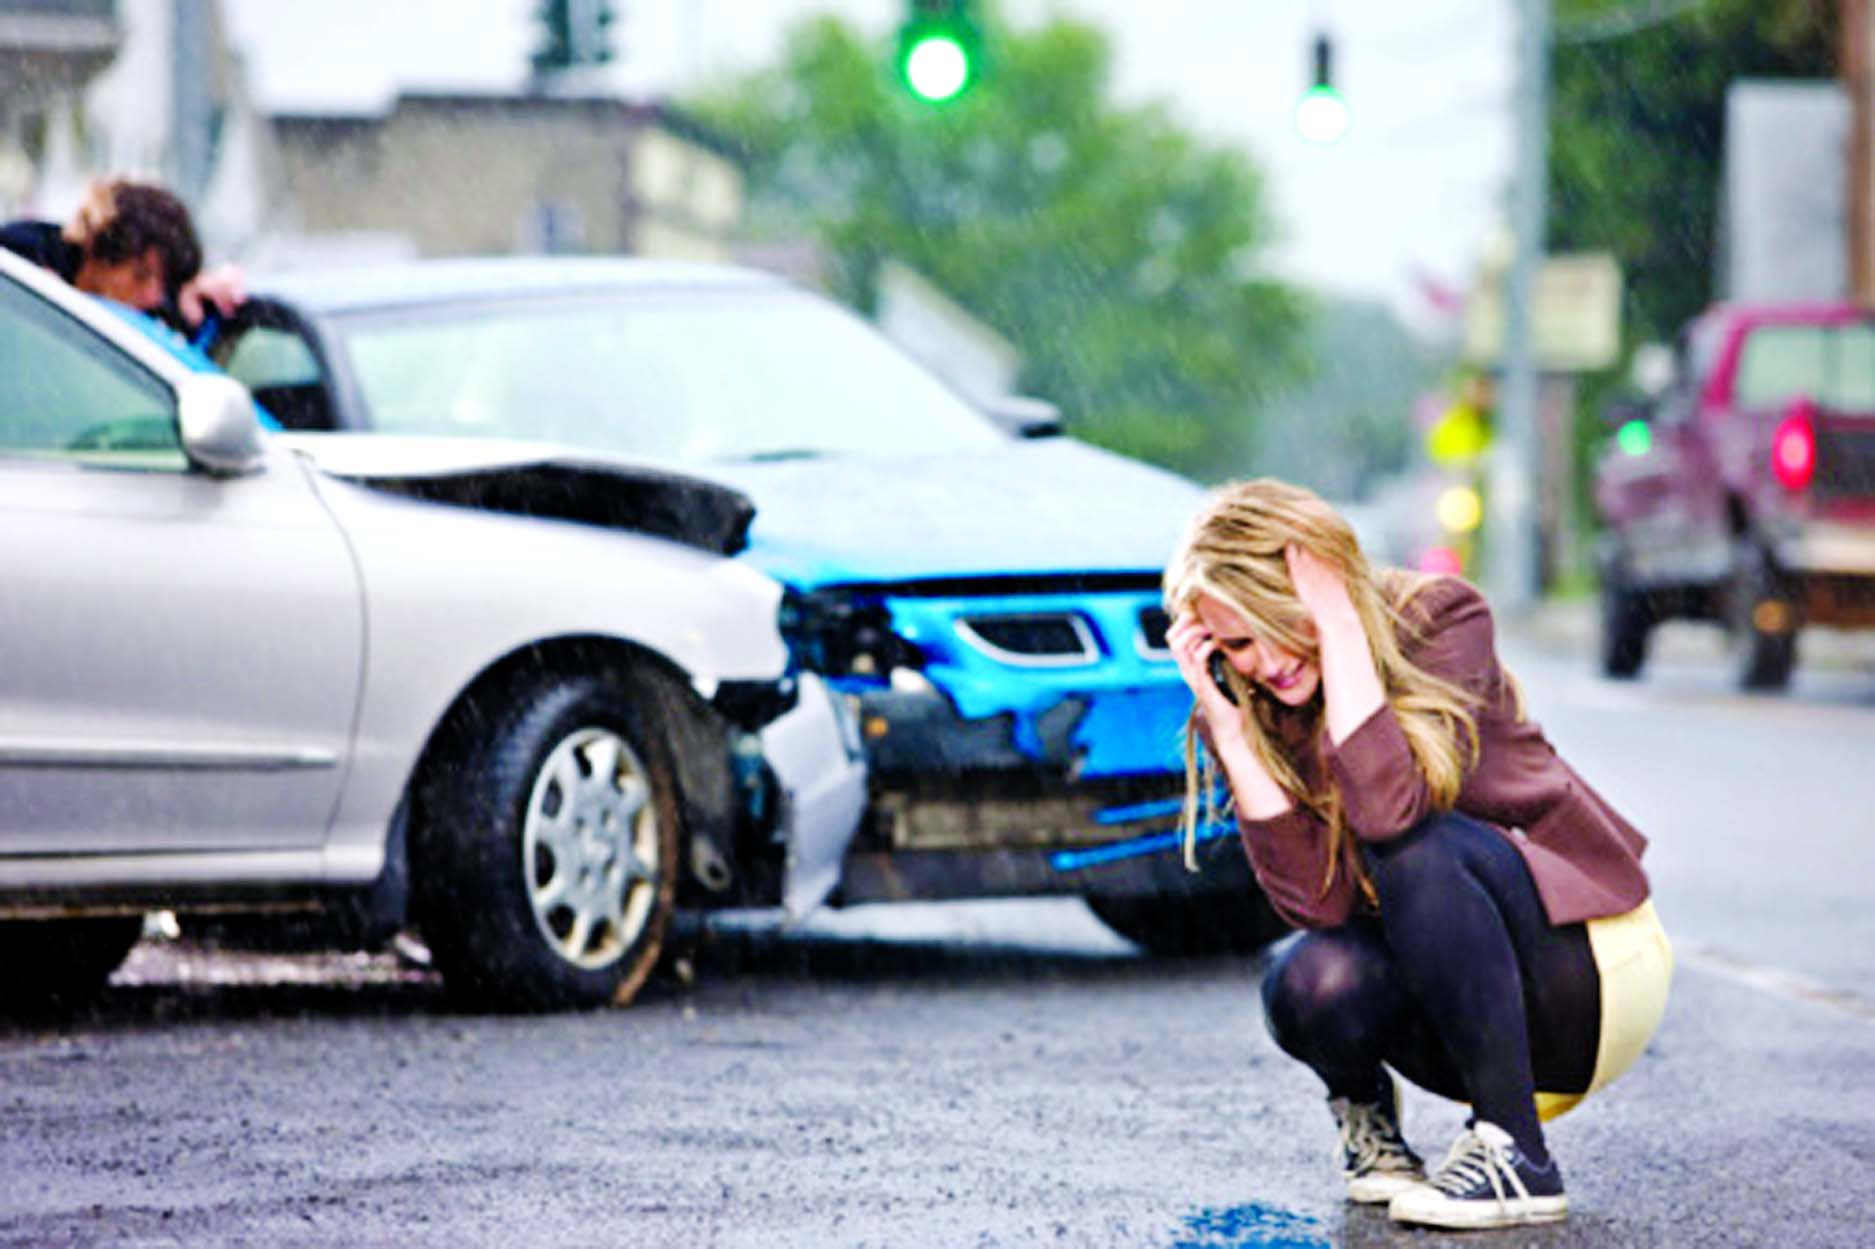 Road accidents biggest killer of teens globally; 3000 youngsters die daily from preventable causes: WHO